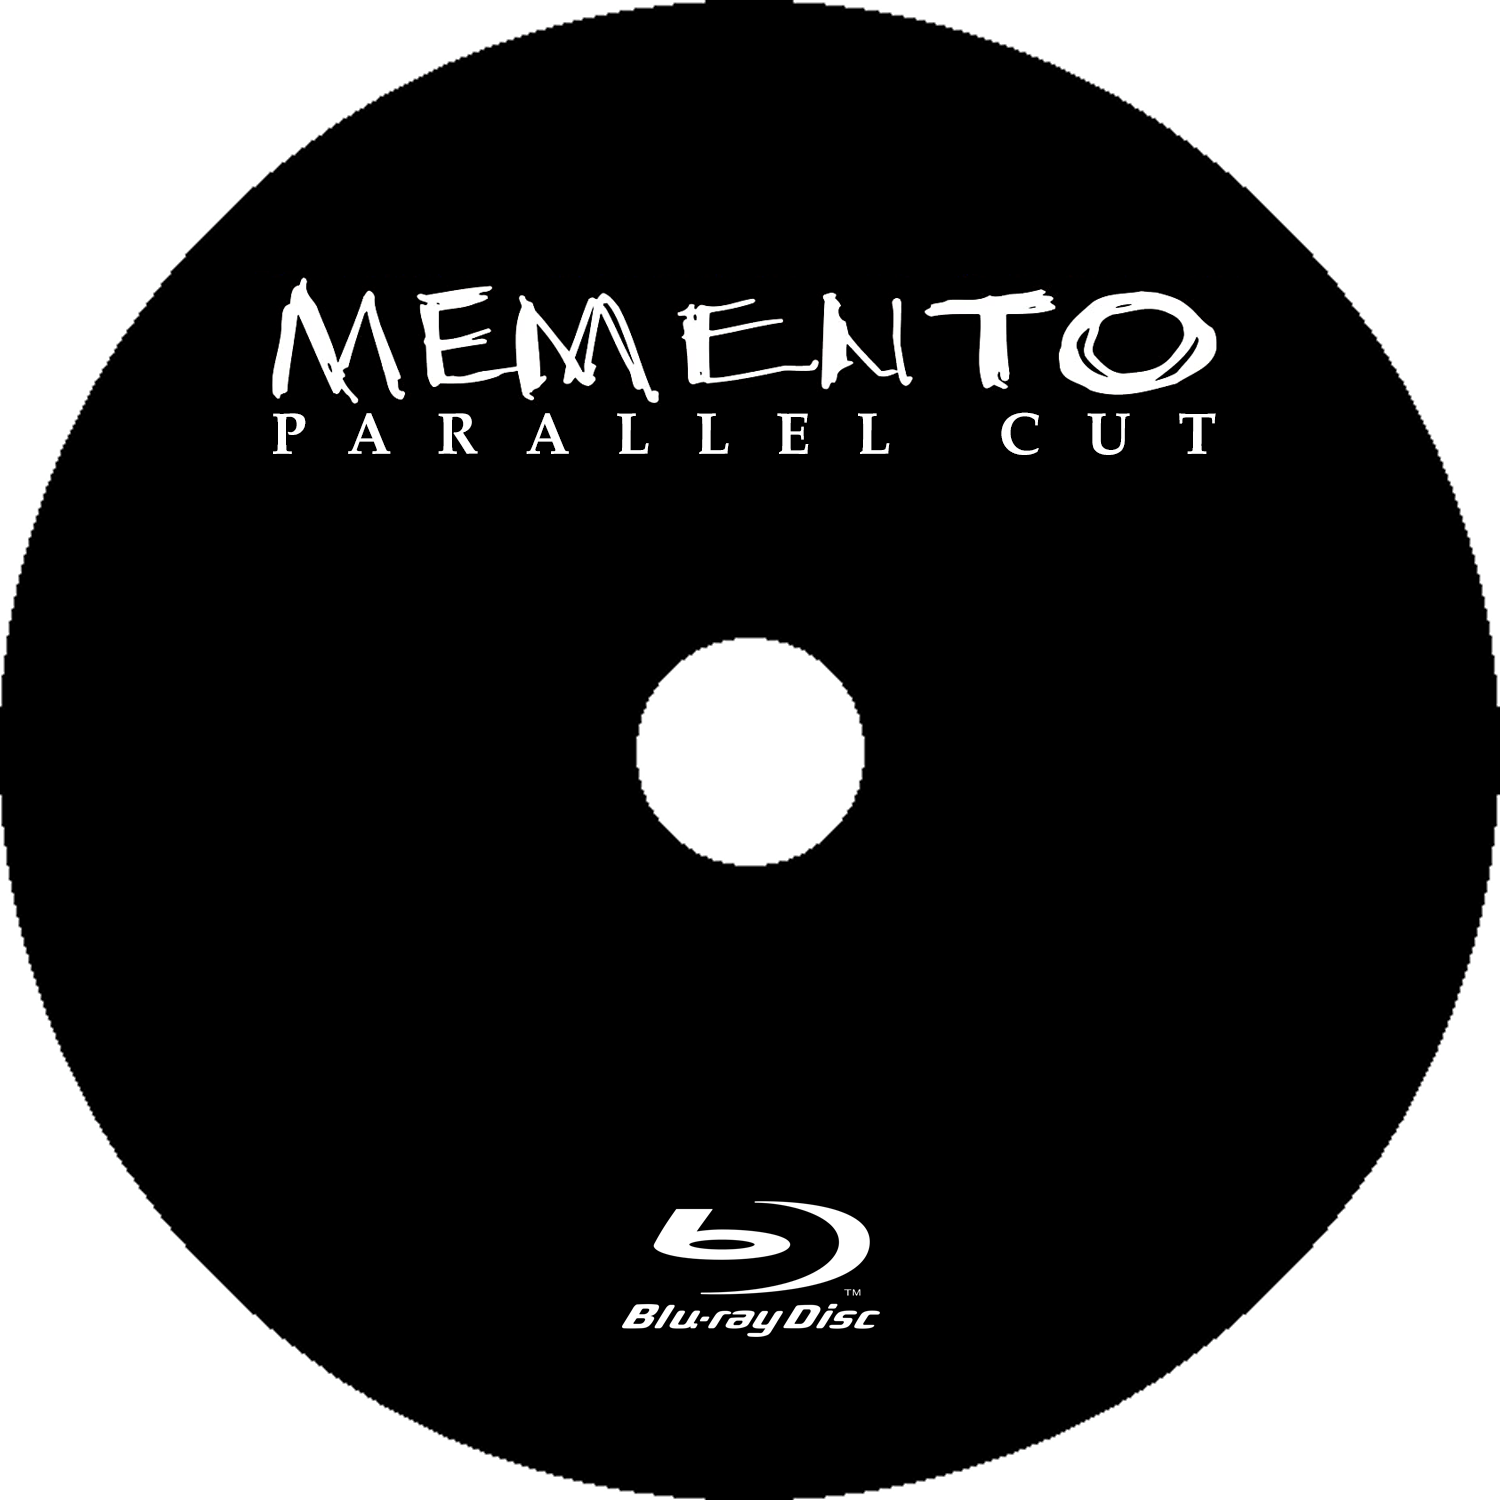 memento_parallel_cut_bluray_disc_label.png